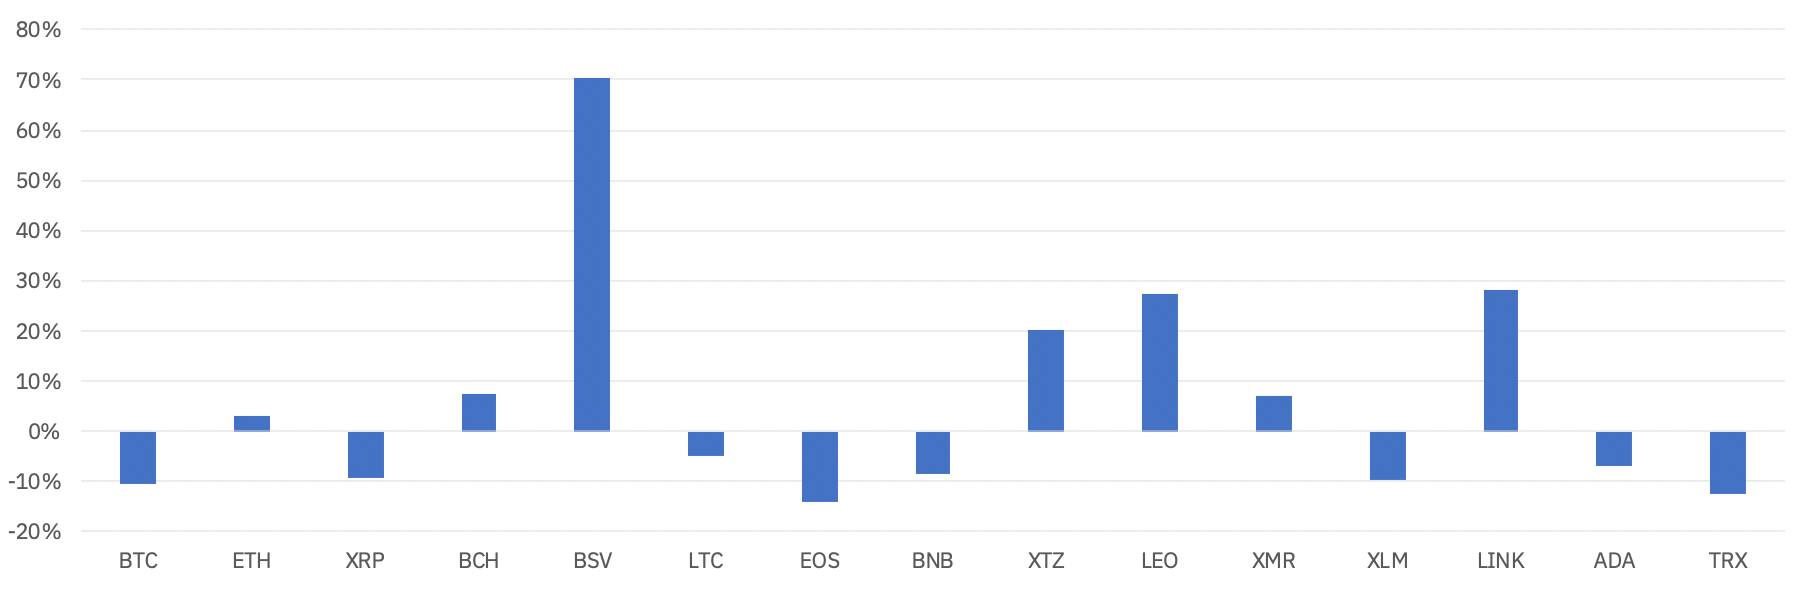 These Large-Cap Altcoins Significantly Outperformed Bitcoin (BTC) in Q1 2020